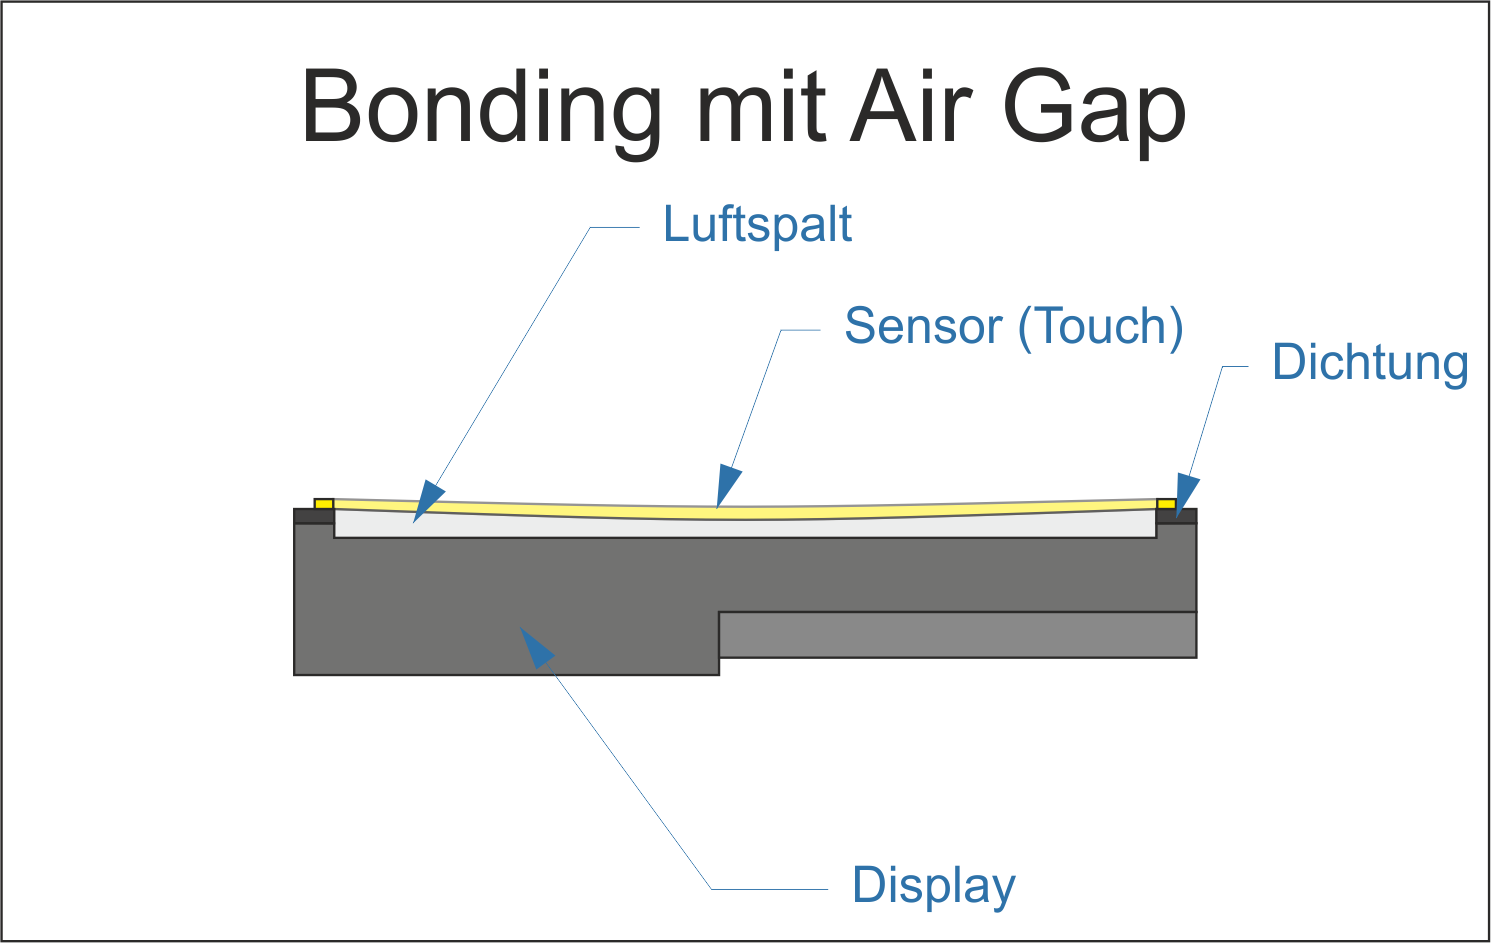 Air Gap Bonding